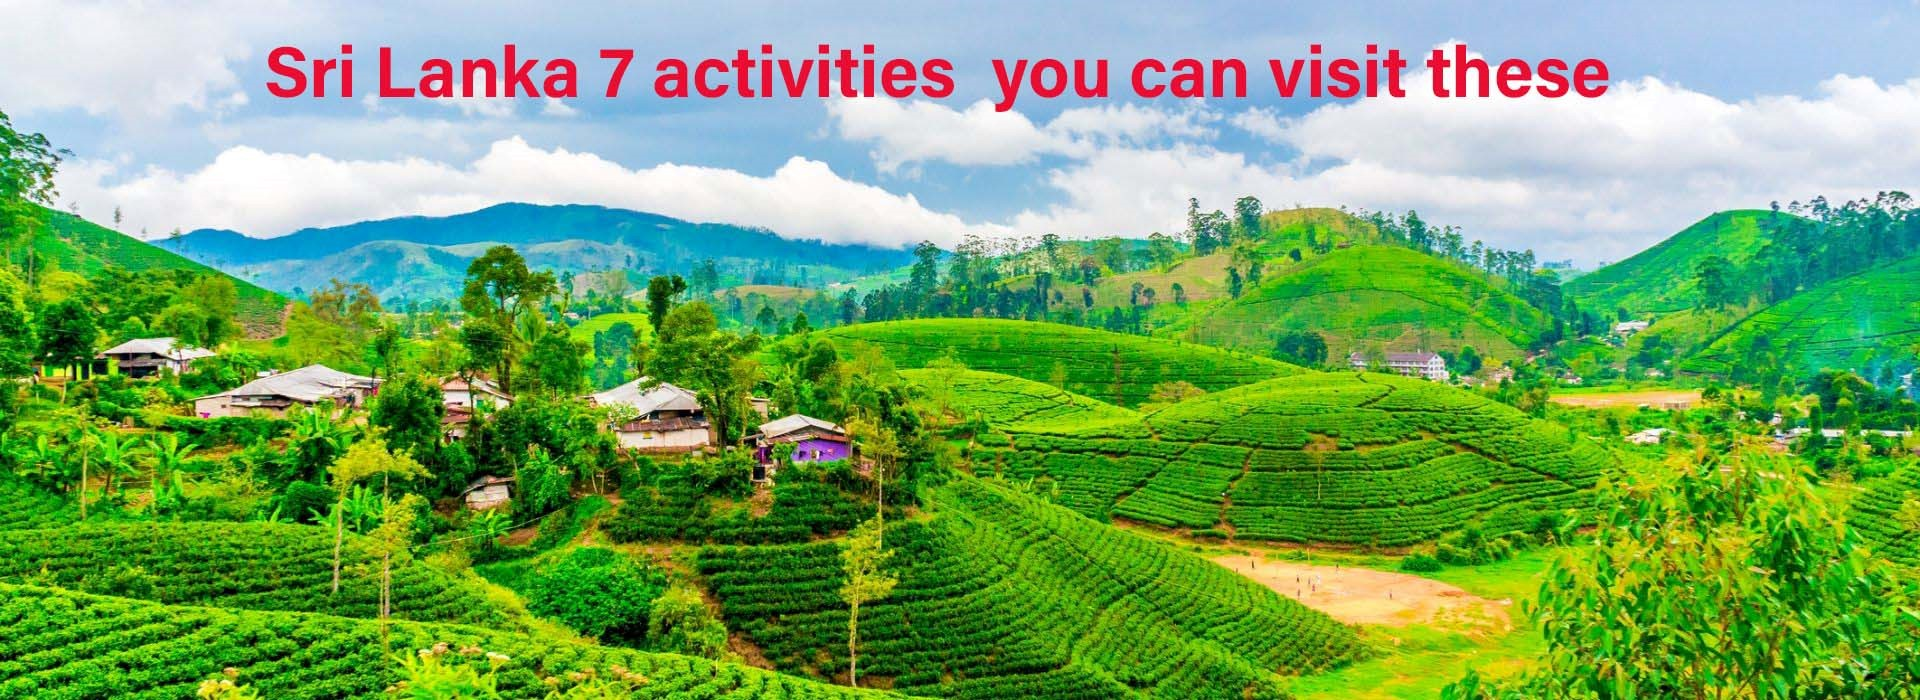 Sri Lanka 7 activities you can visit these